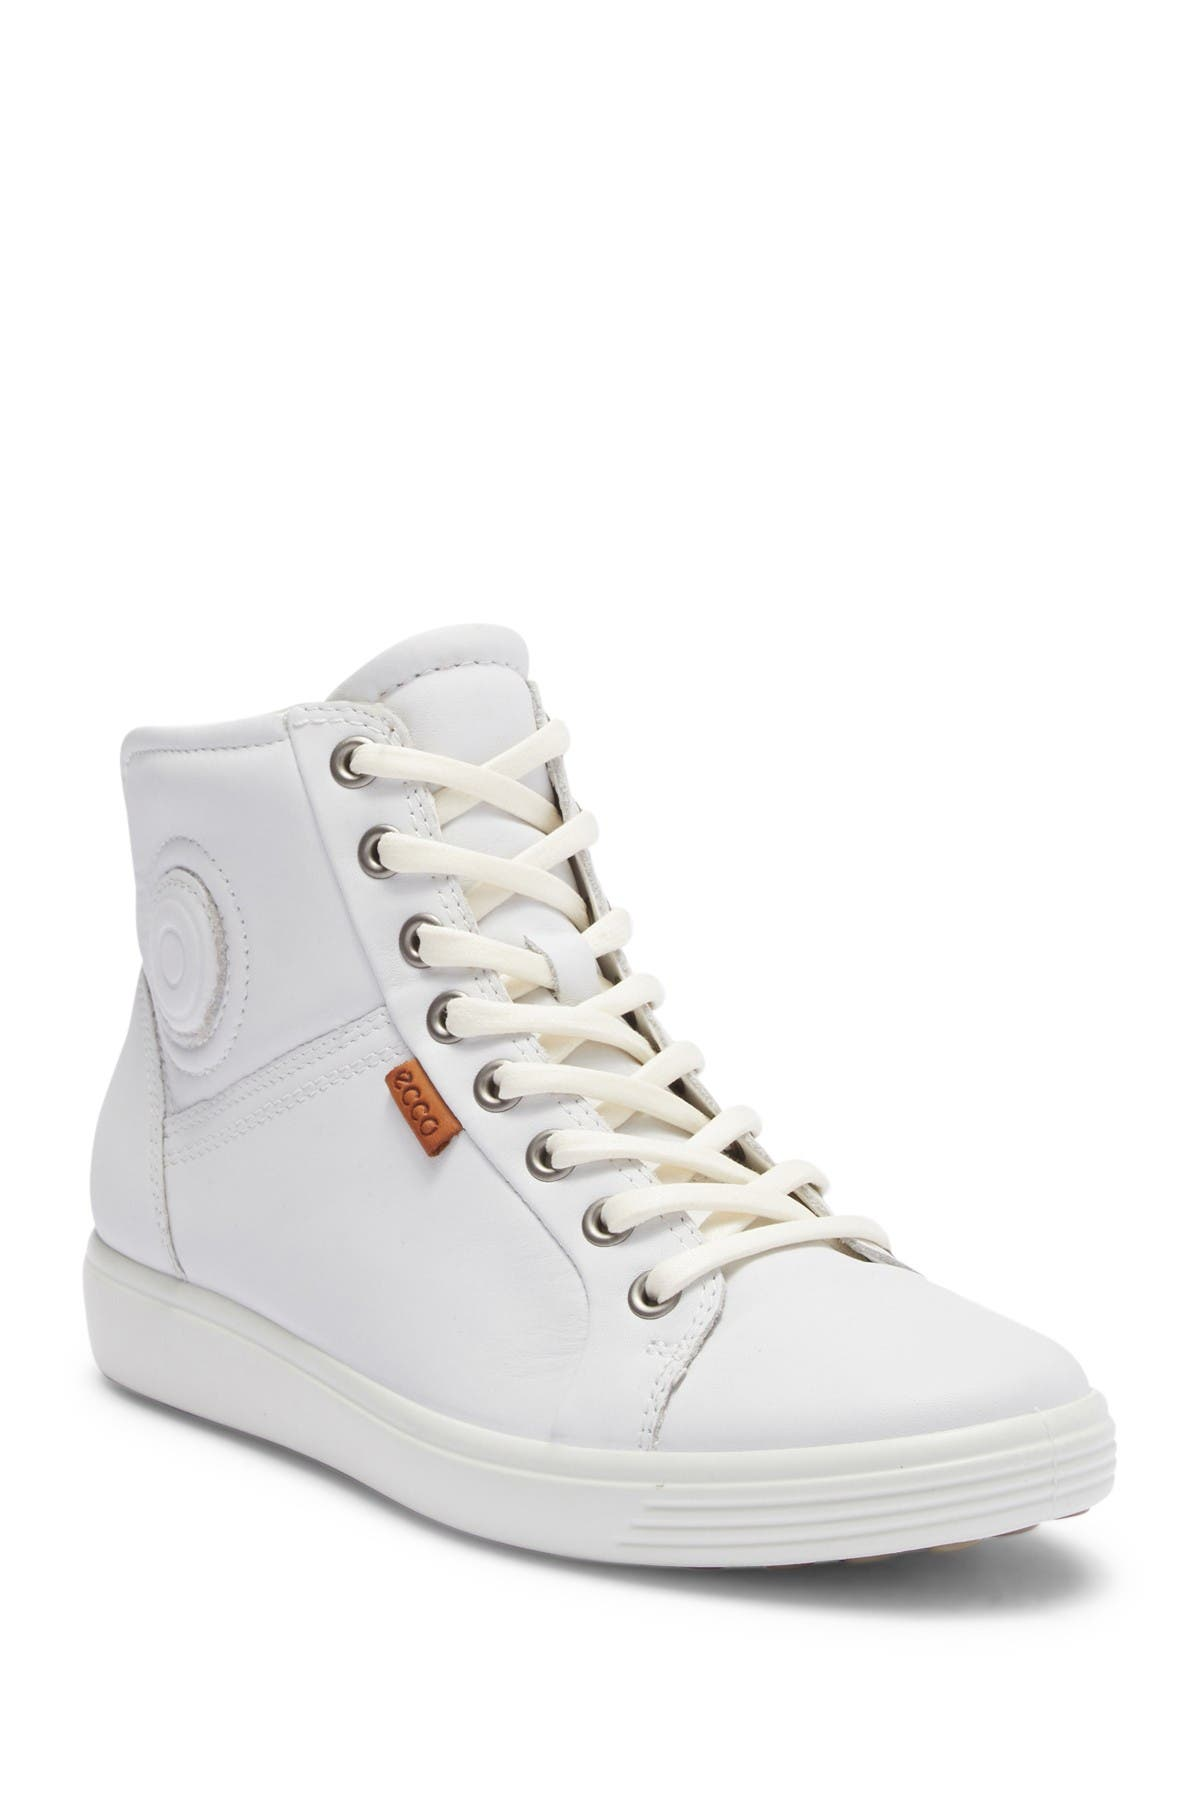 ECCO | Soft 7 Leather Mid Sneaker